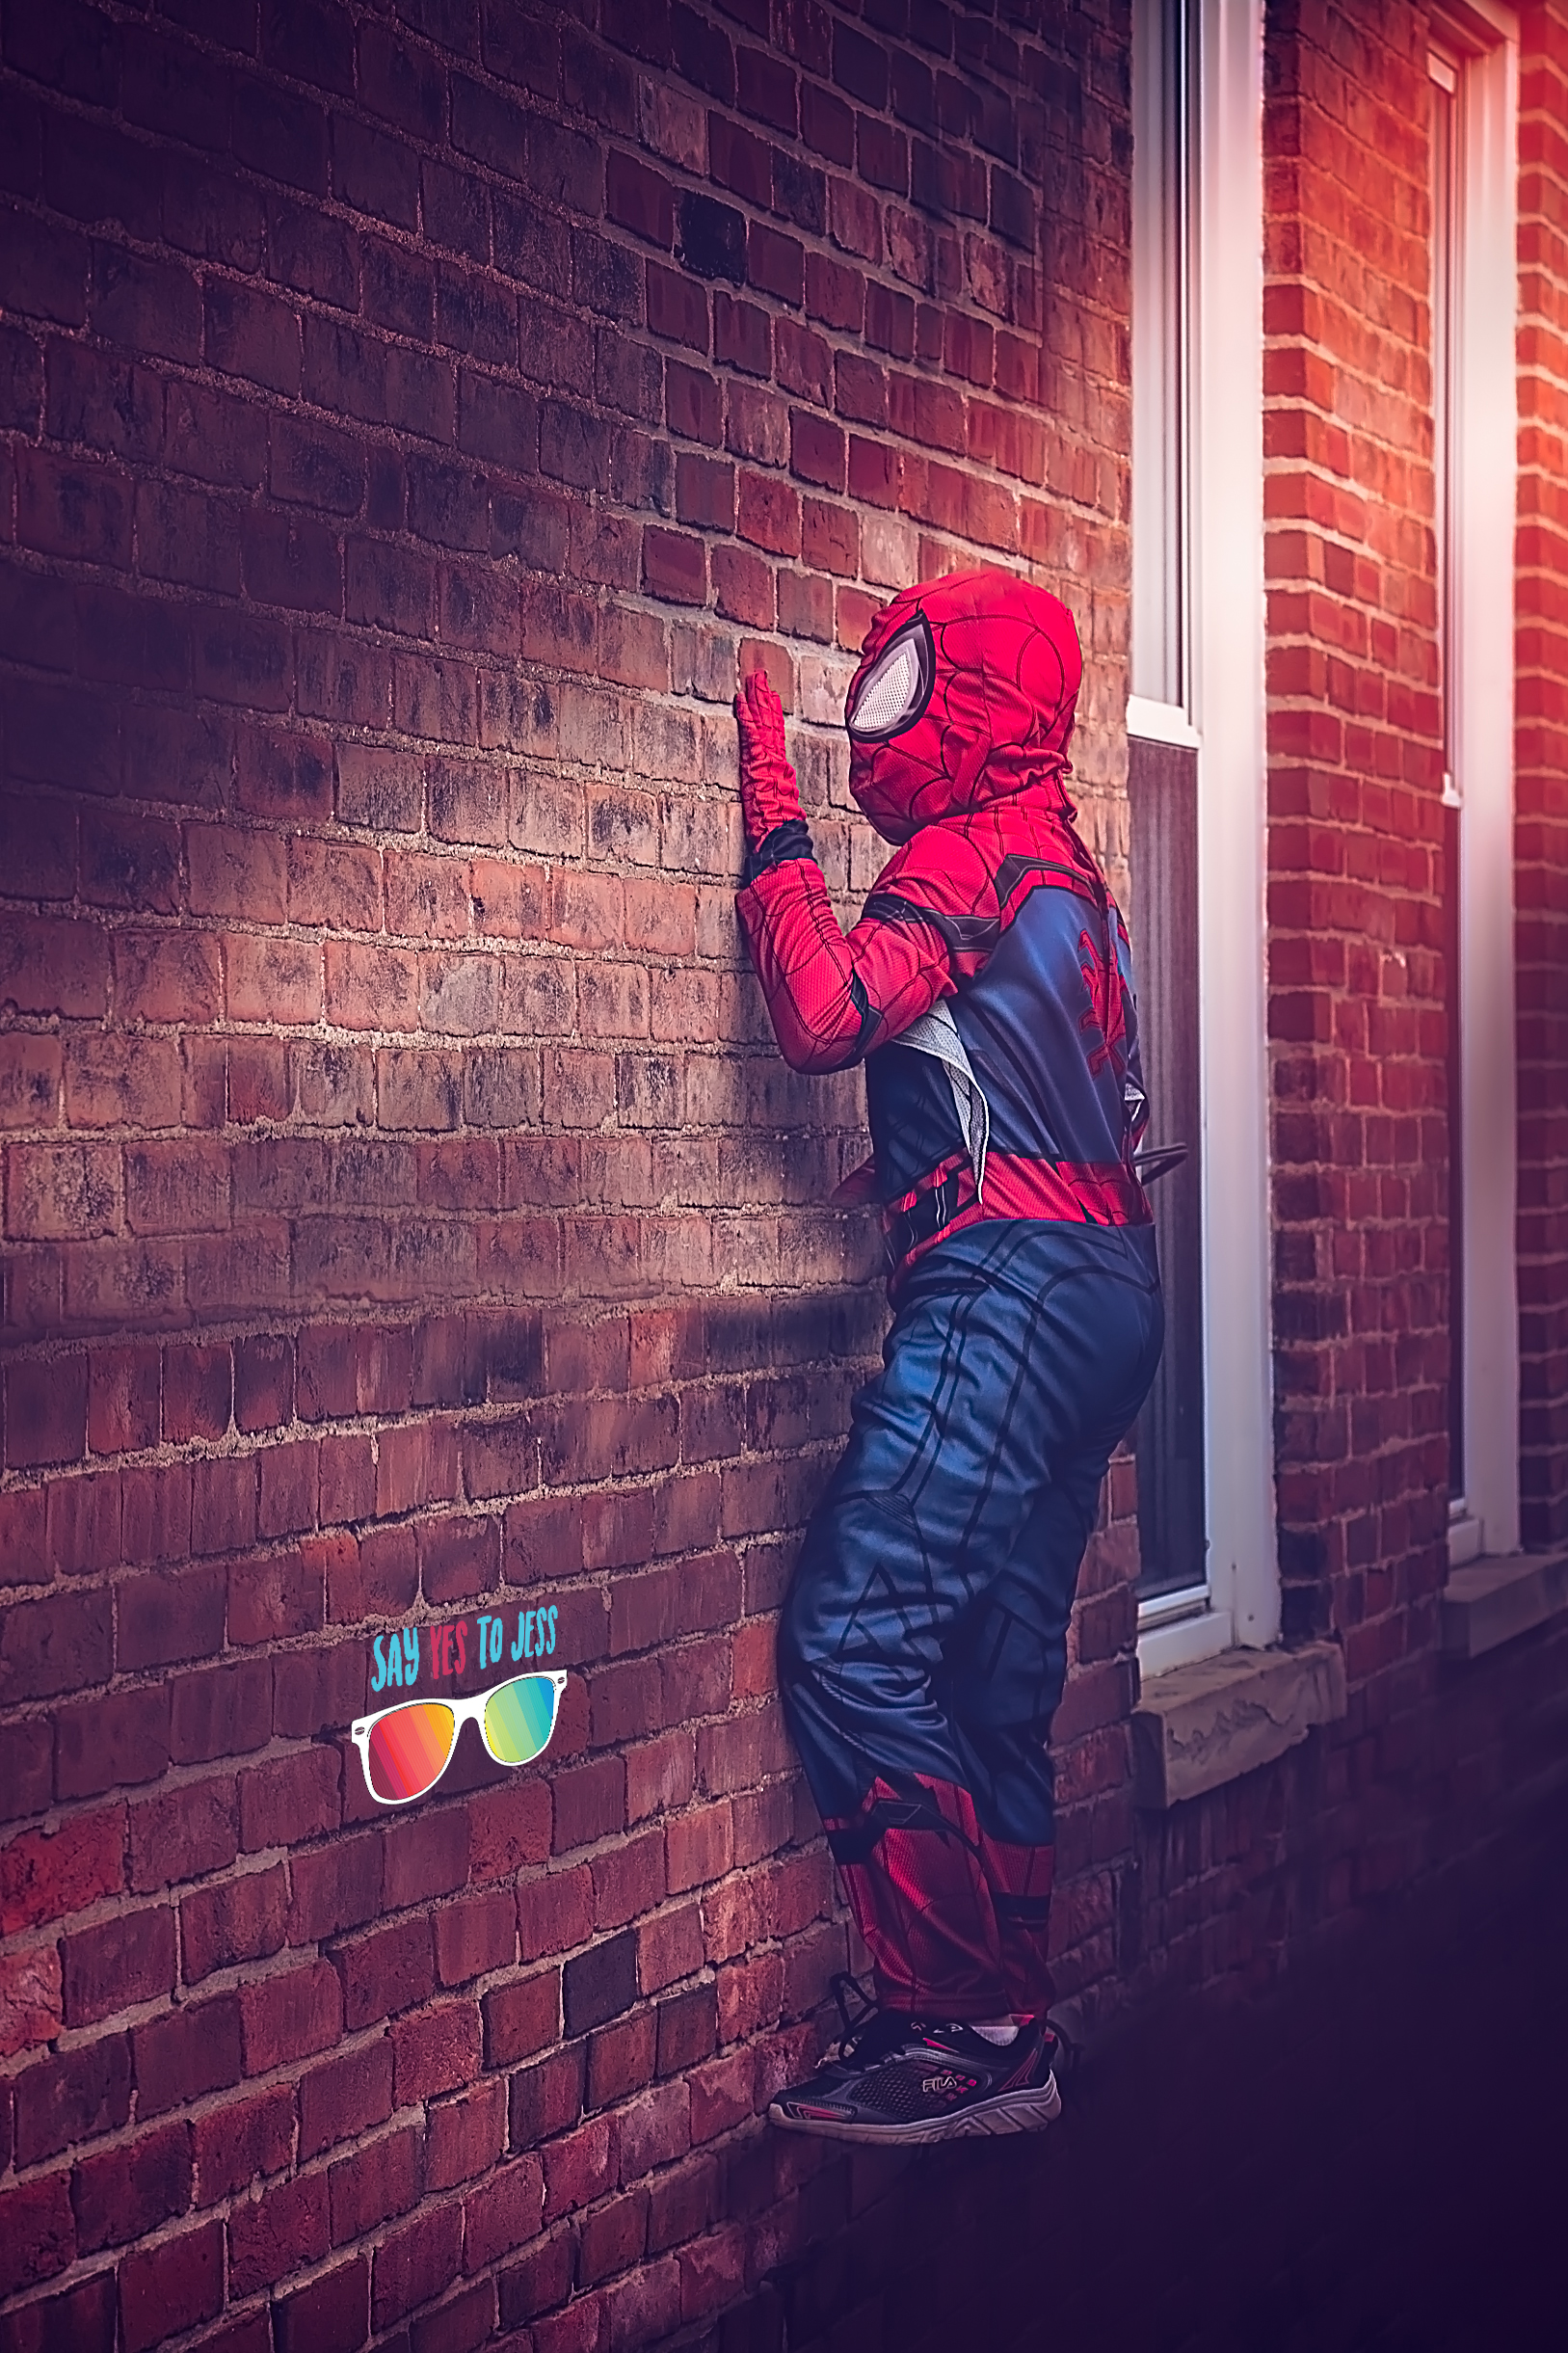 Spiderman Dream Session Superhero Photos Cincinnati Ohio and Covington Kentucky Fantasy Photographer.jpg